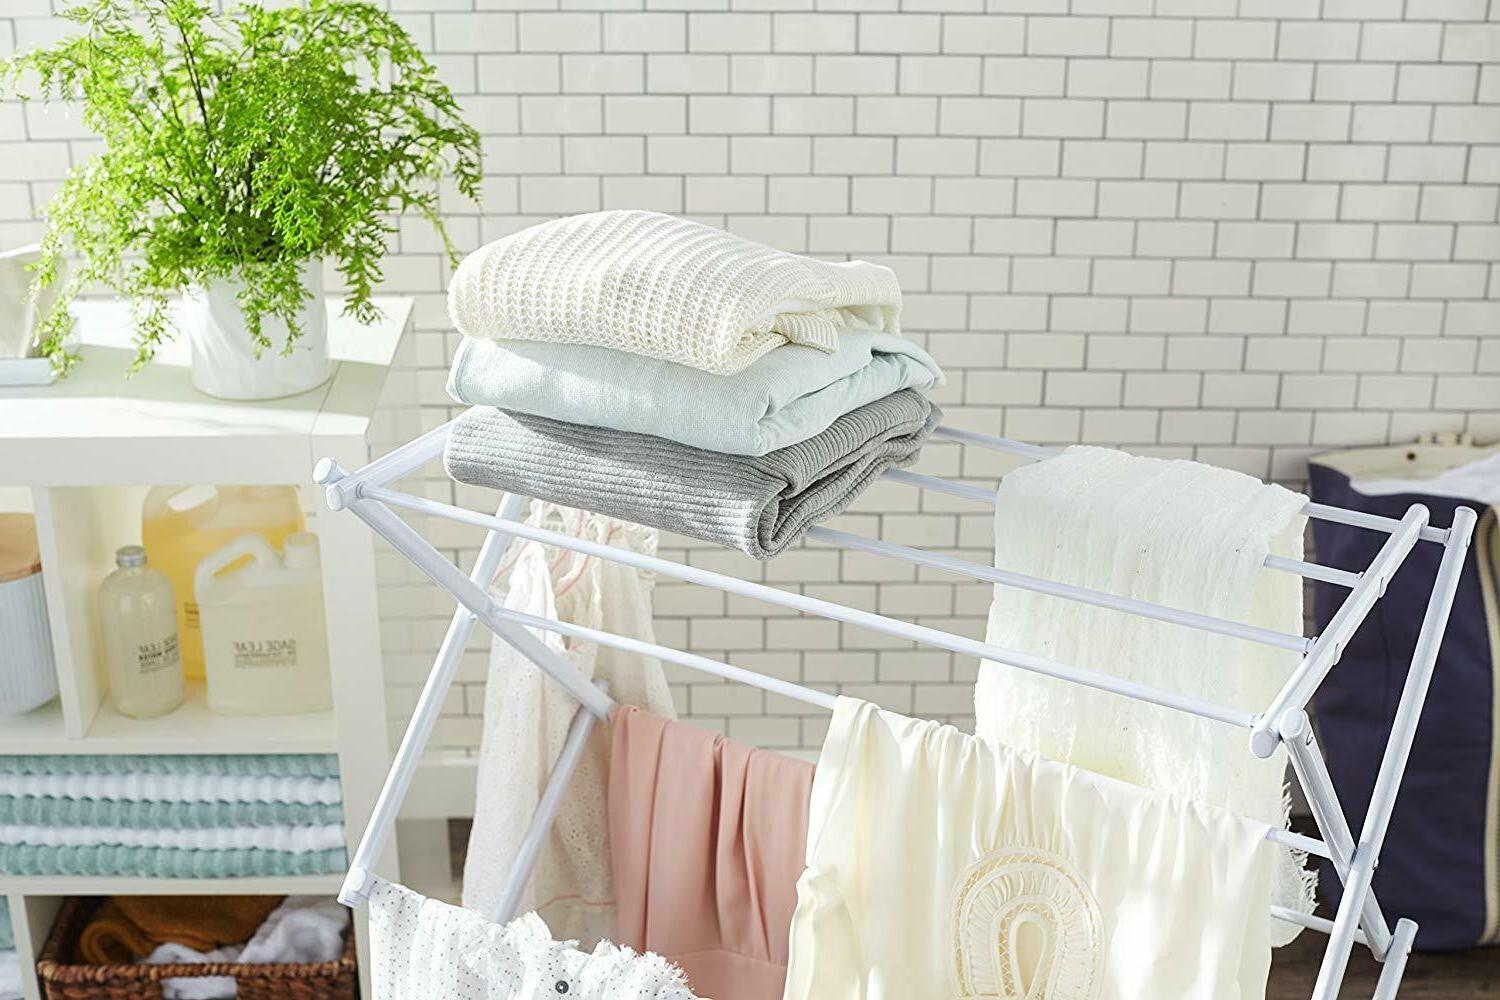 Foldable Drying - White